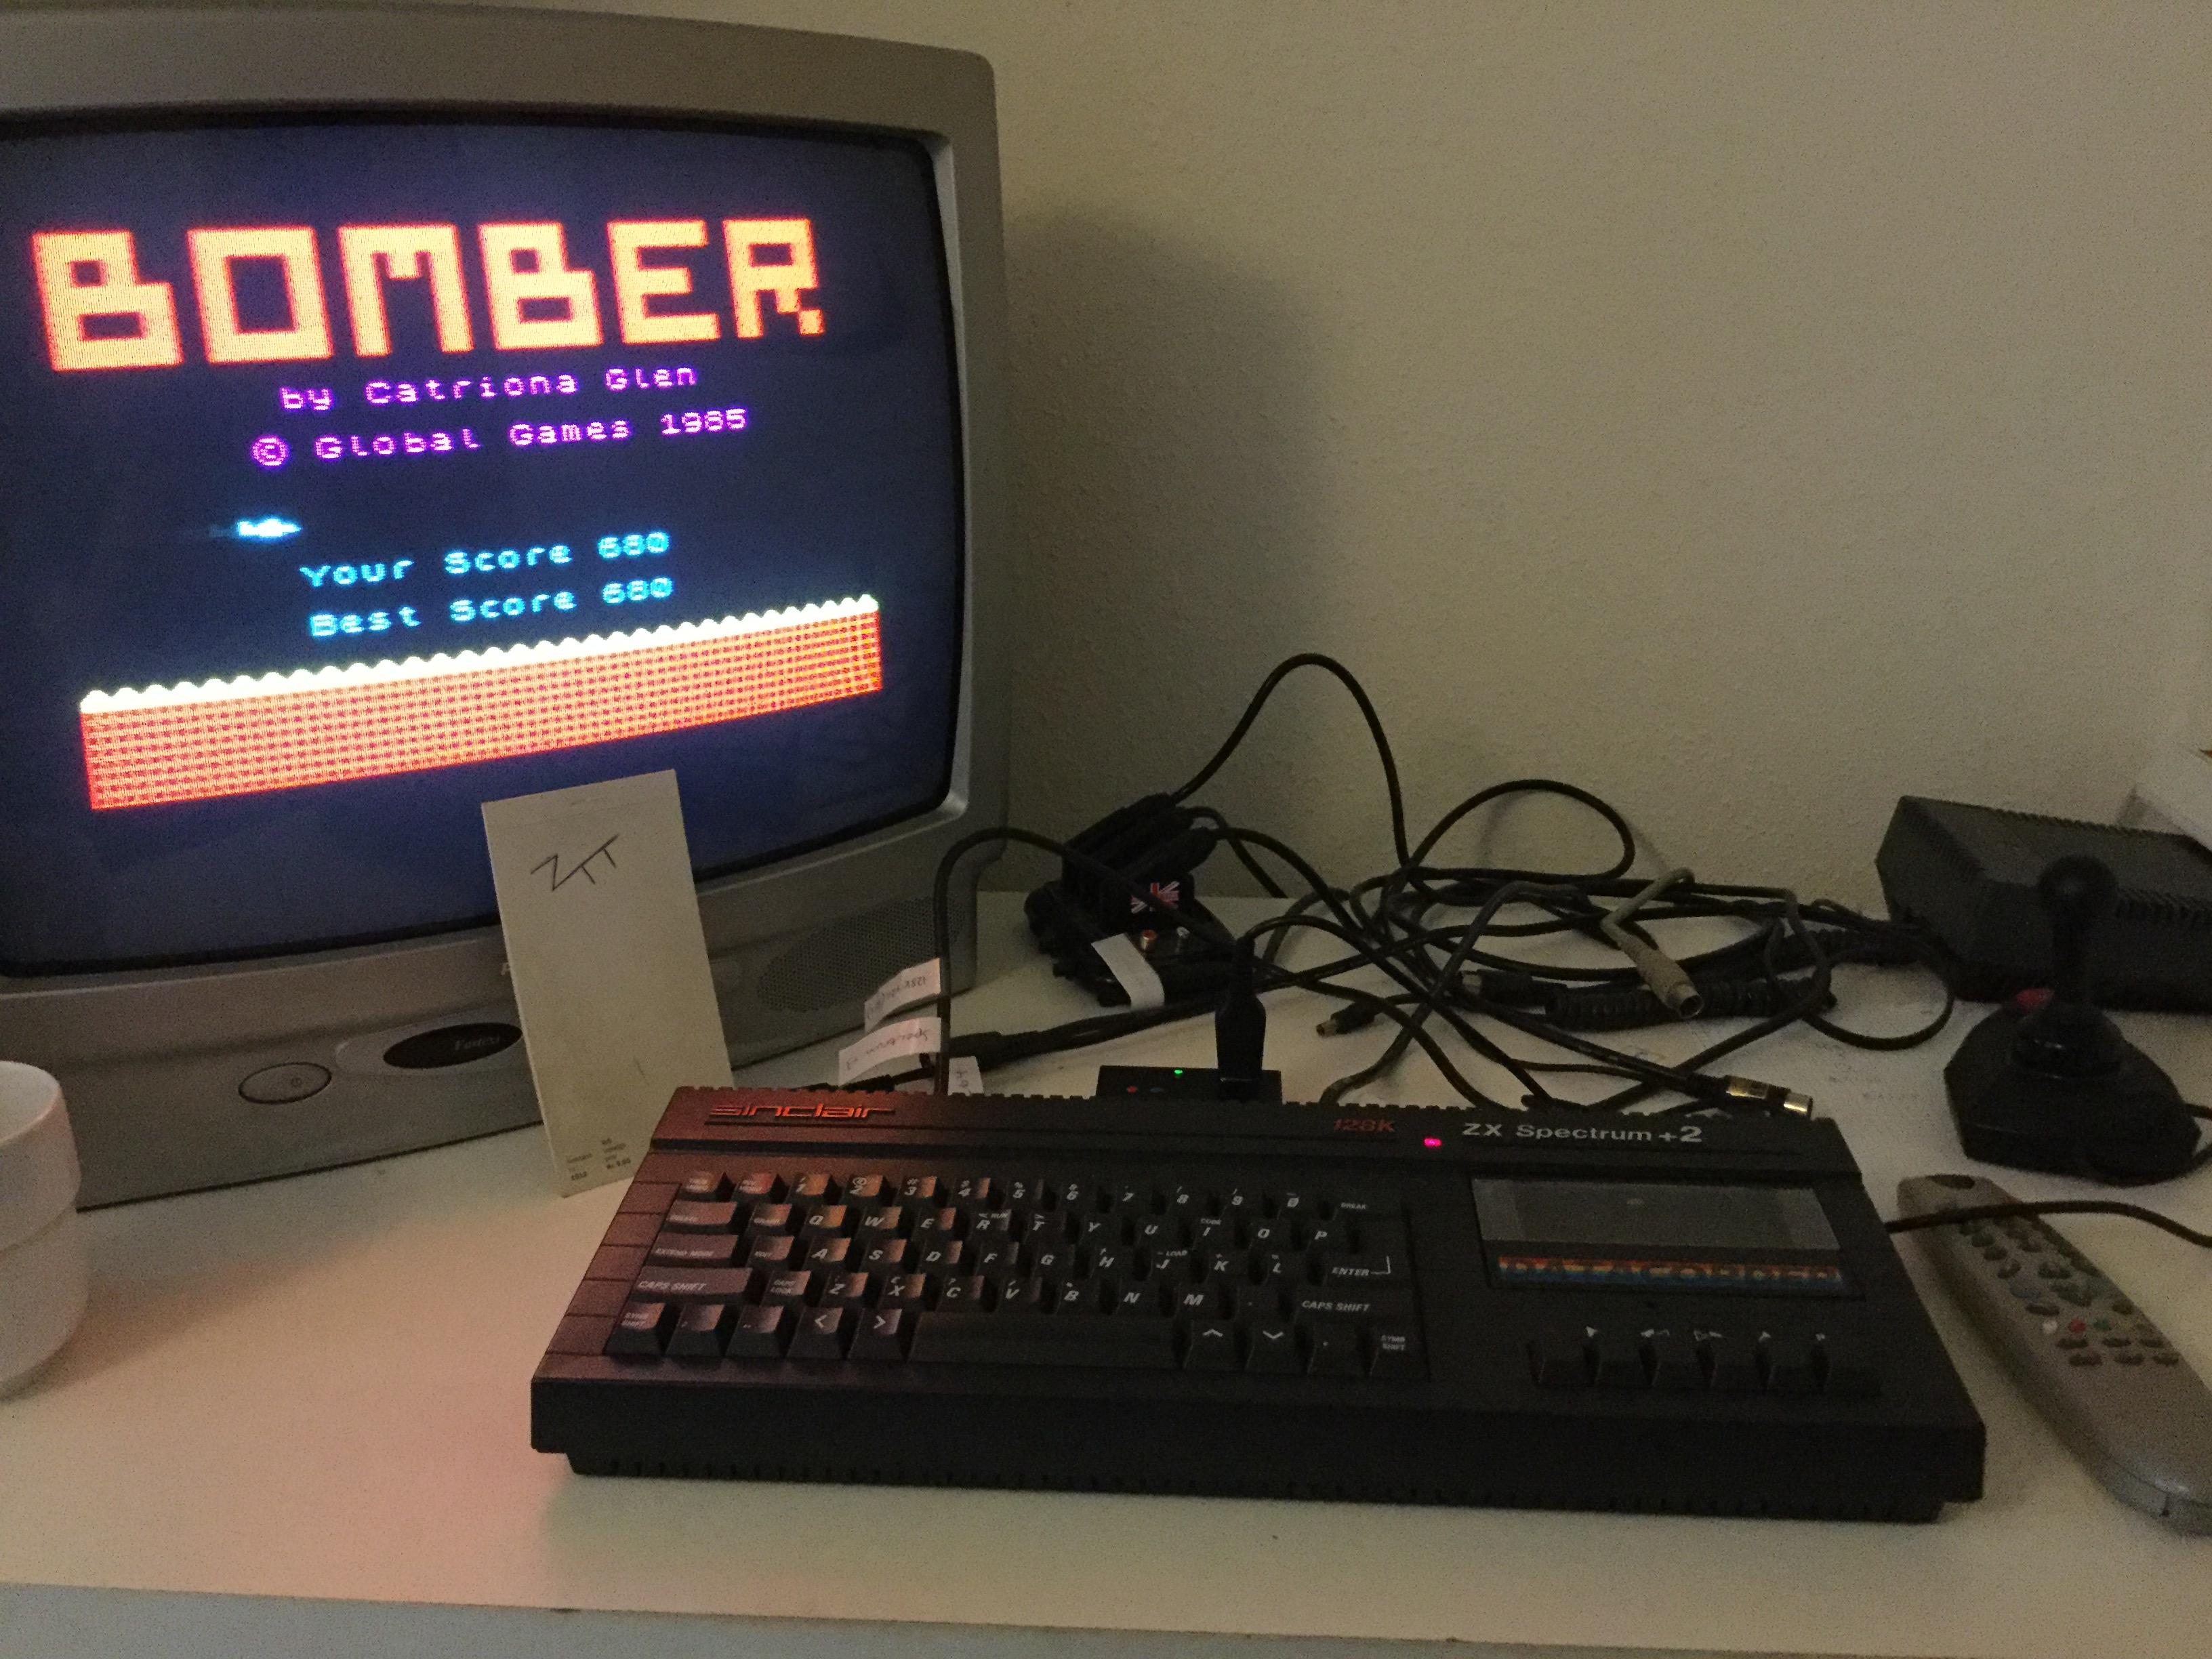 Frankie: Bomber [Global Games] (ZX Spectrum) 680 points on 2018-09-14 11:28:06